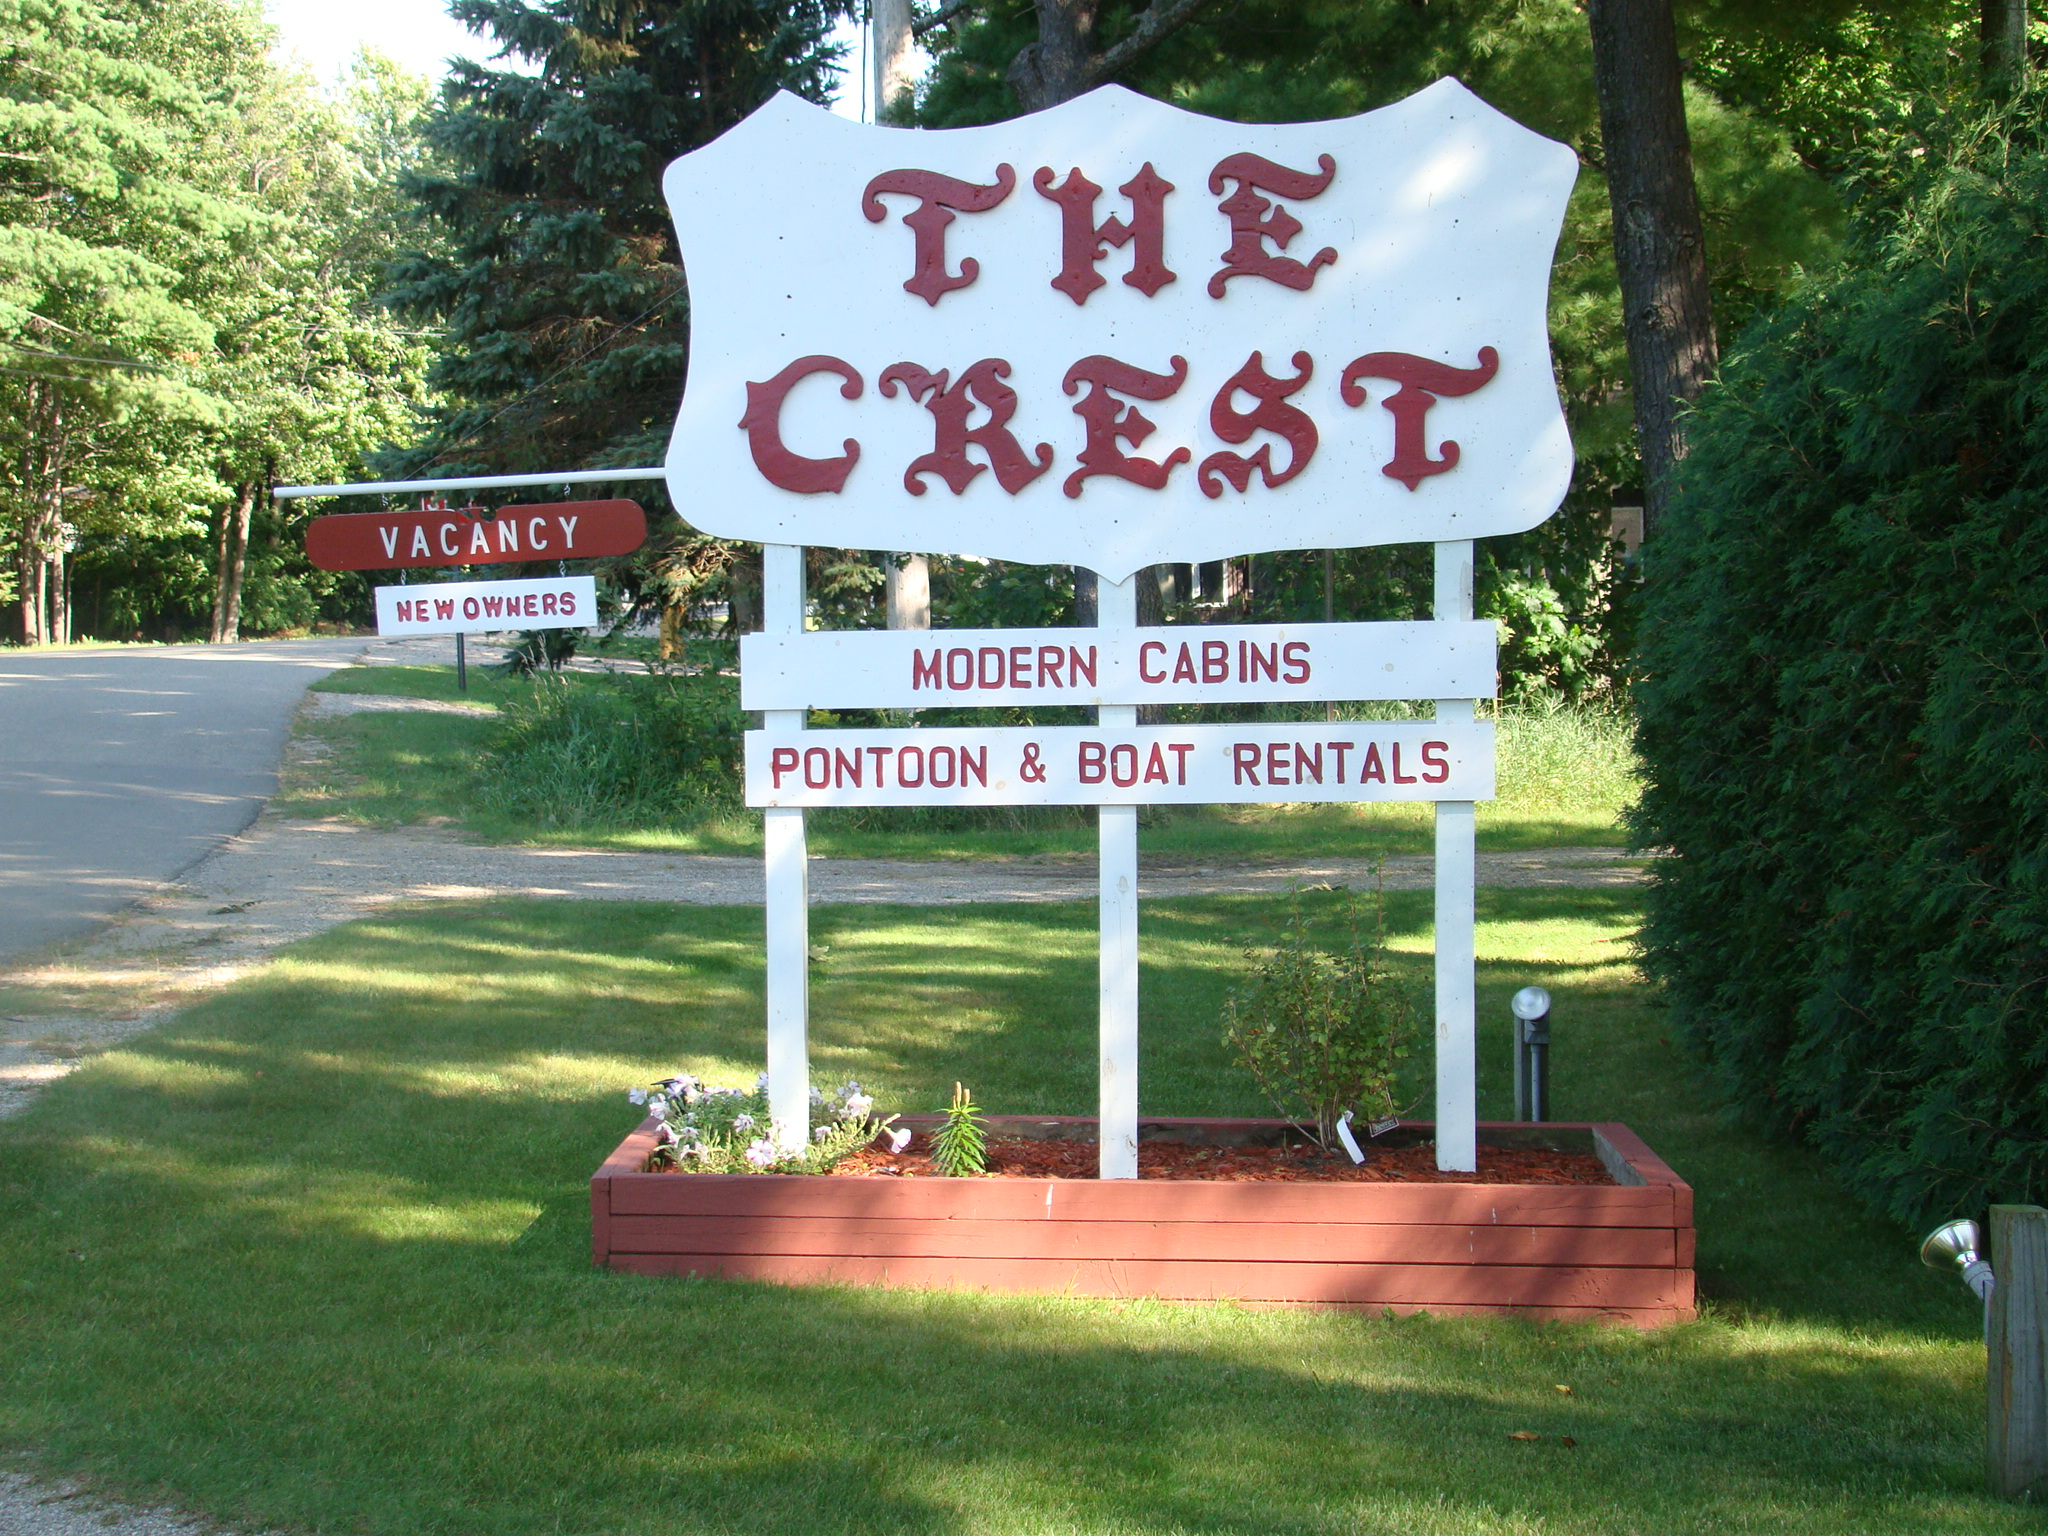 Welcome To The Crest Resort Located On The Northeast Shore Of Beautiful Houghton  Lakeu2026.the U201cquiet Side Of The Lake.u201d We Provide Very Well Maintained And ...